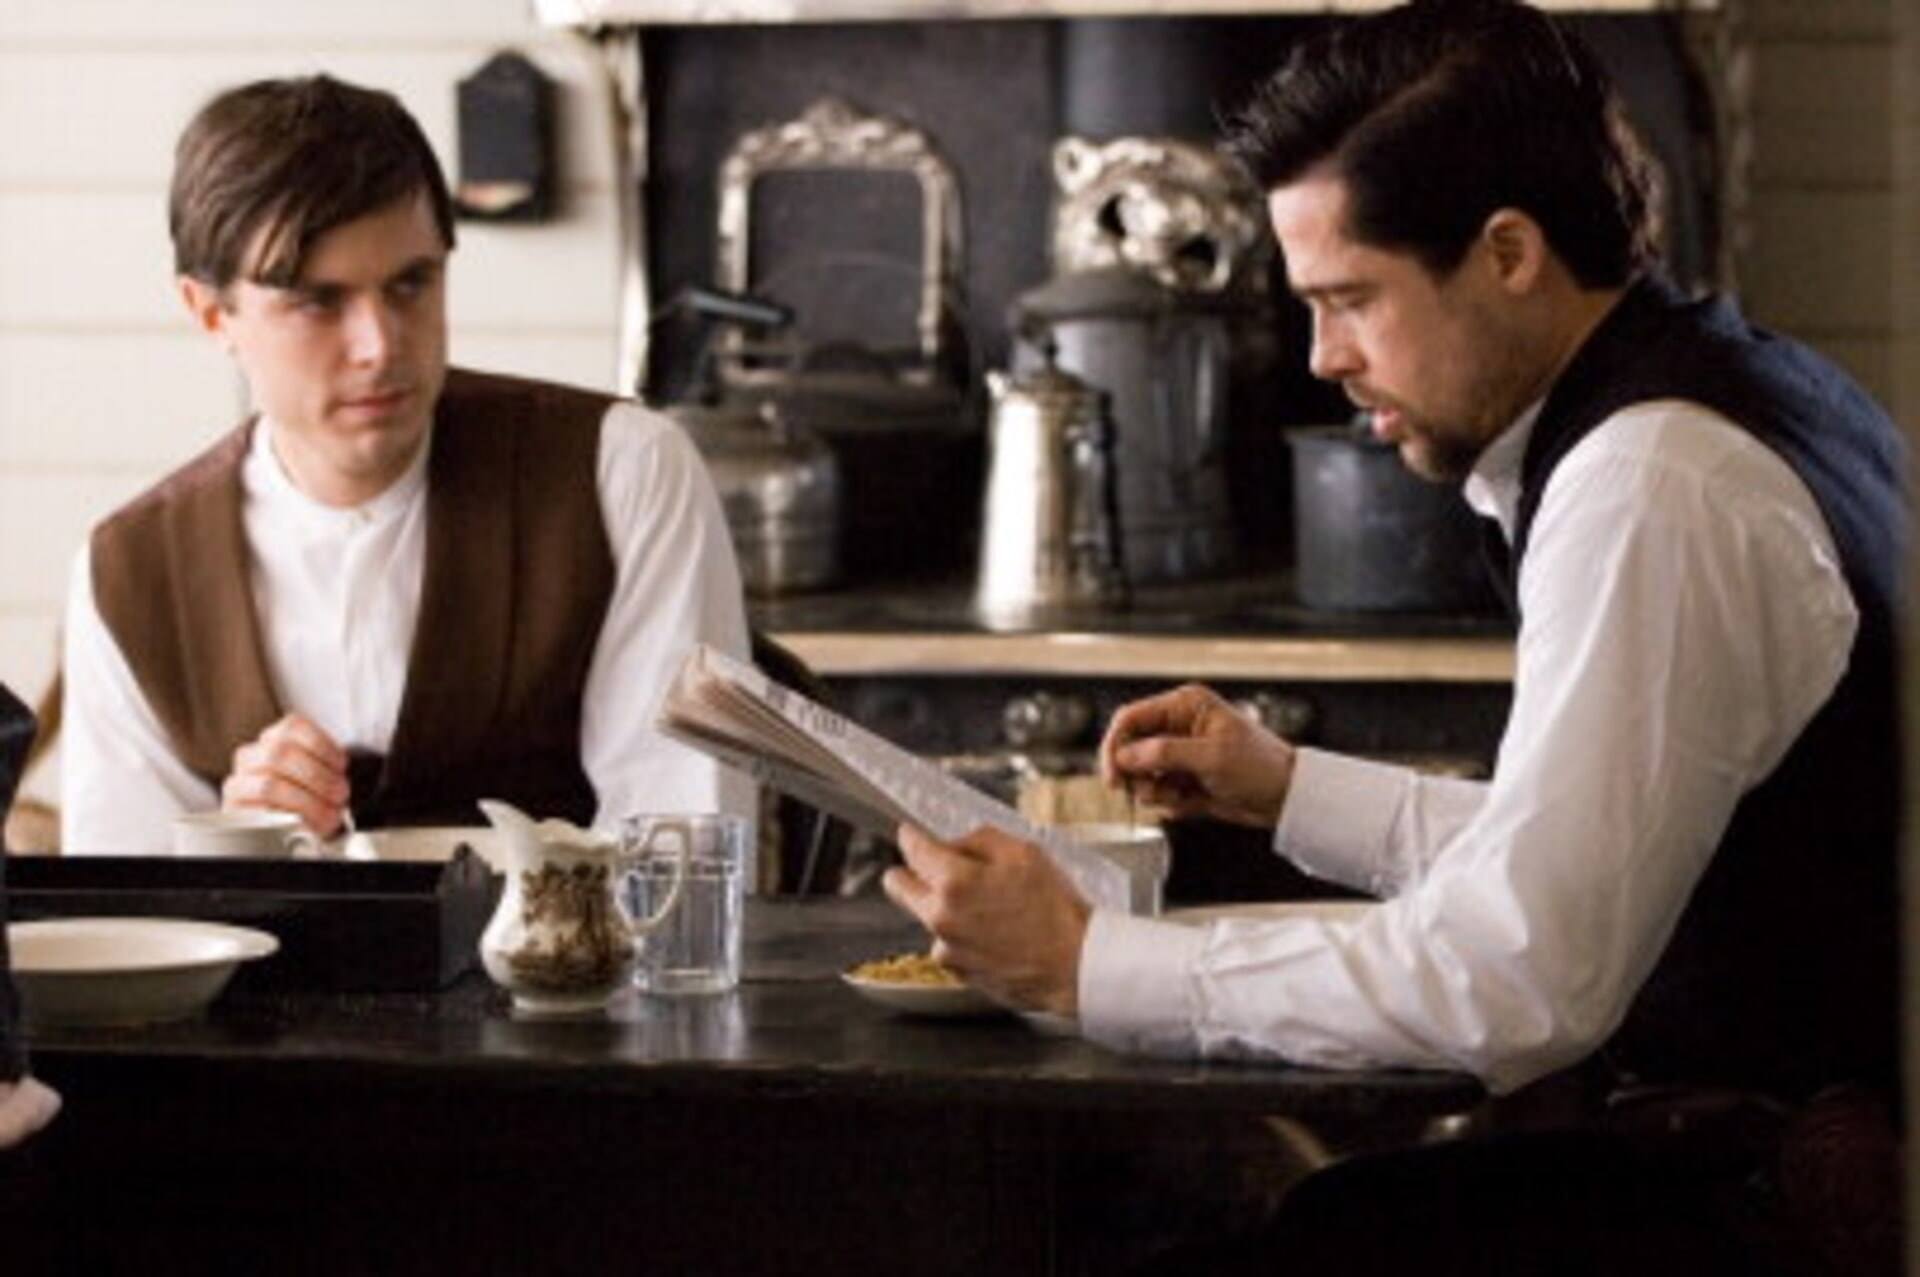 The Assassination of Jesse James by the Coward Robert Ford - Image 26